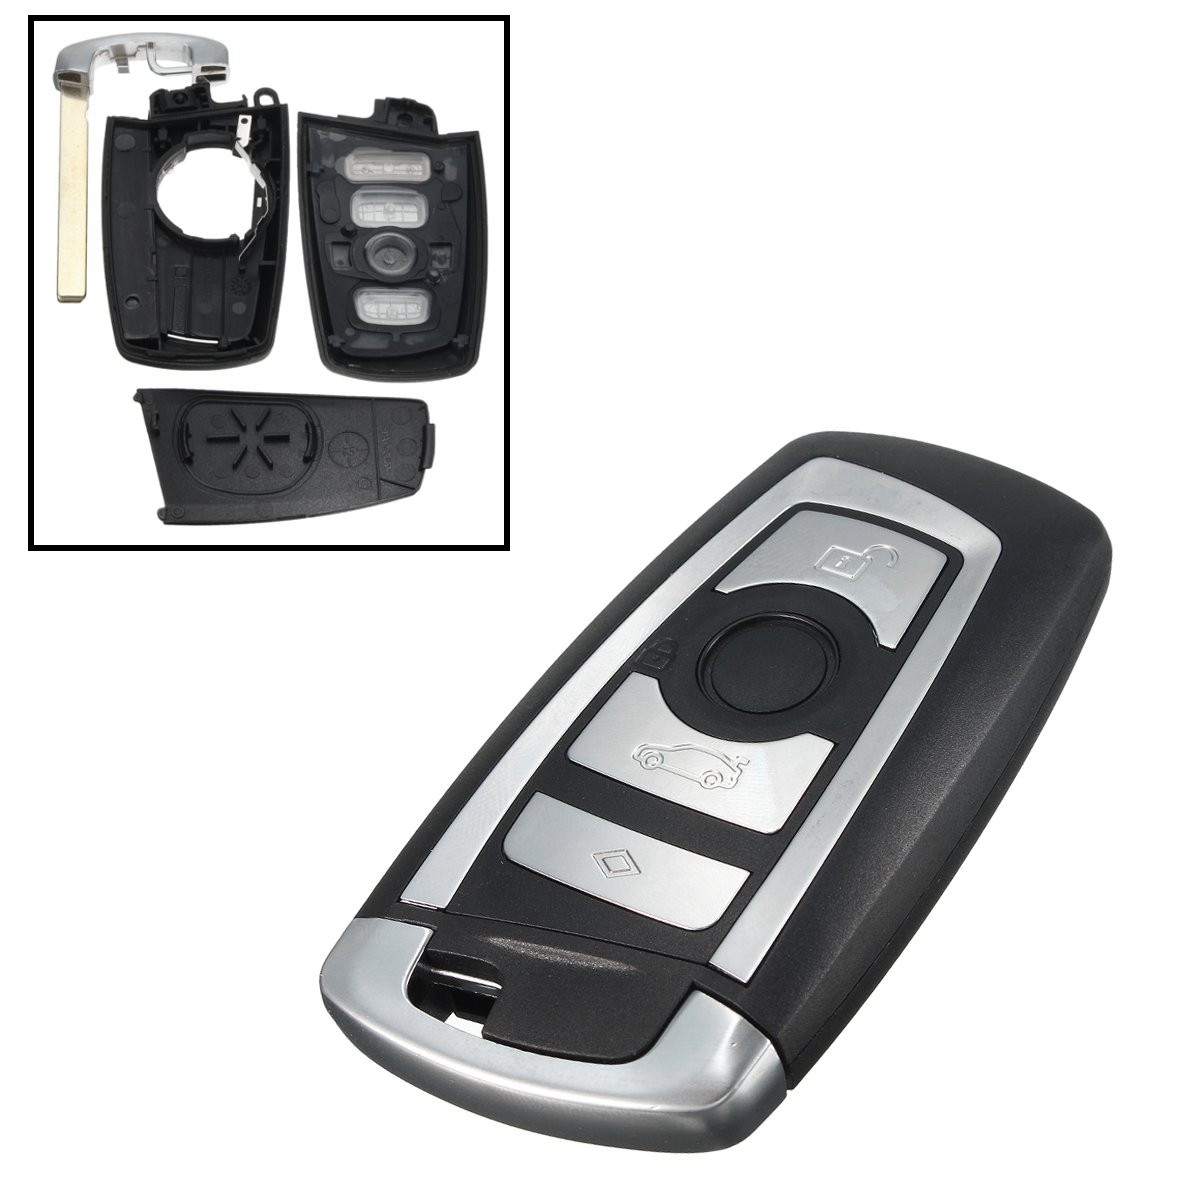 Bmw Key Fob: 4 Botton Uncut Blade Fob Remote Key Shell Case F10 F20 F30